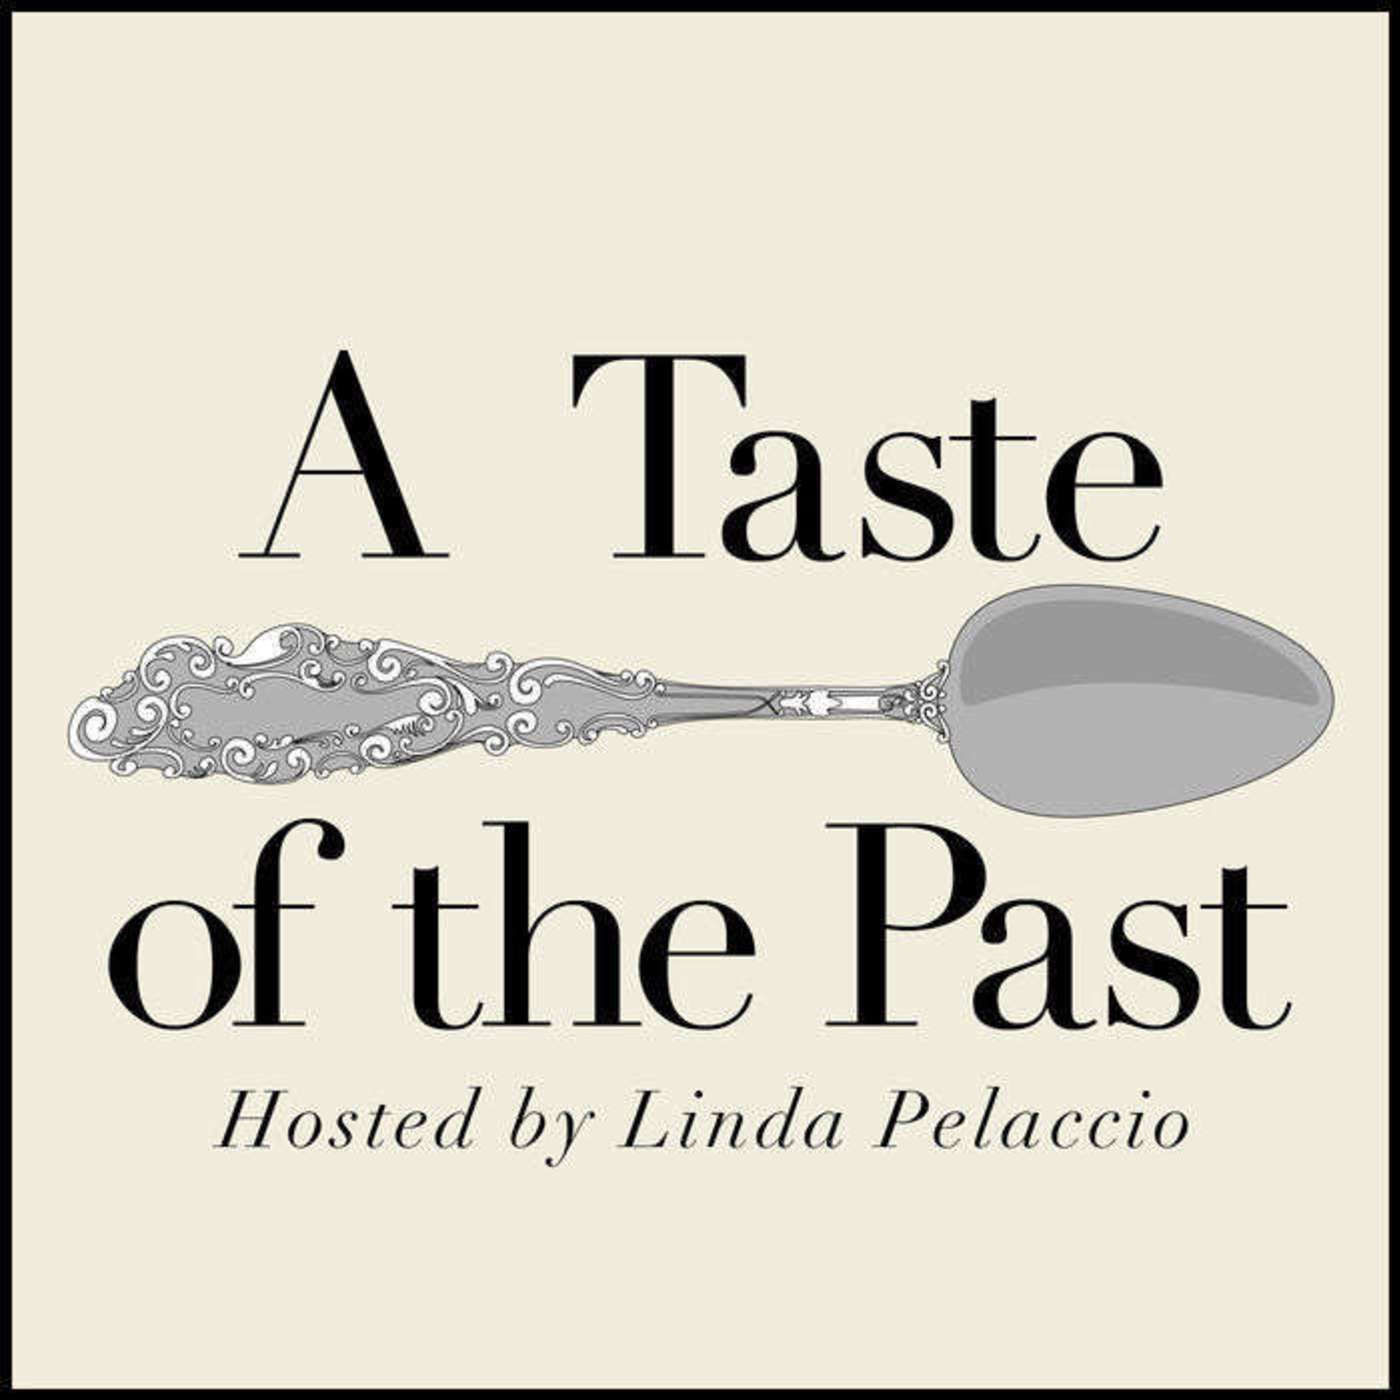 Episode 145: Housewives' Paradise: History of Supermarkets